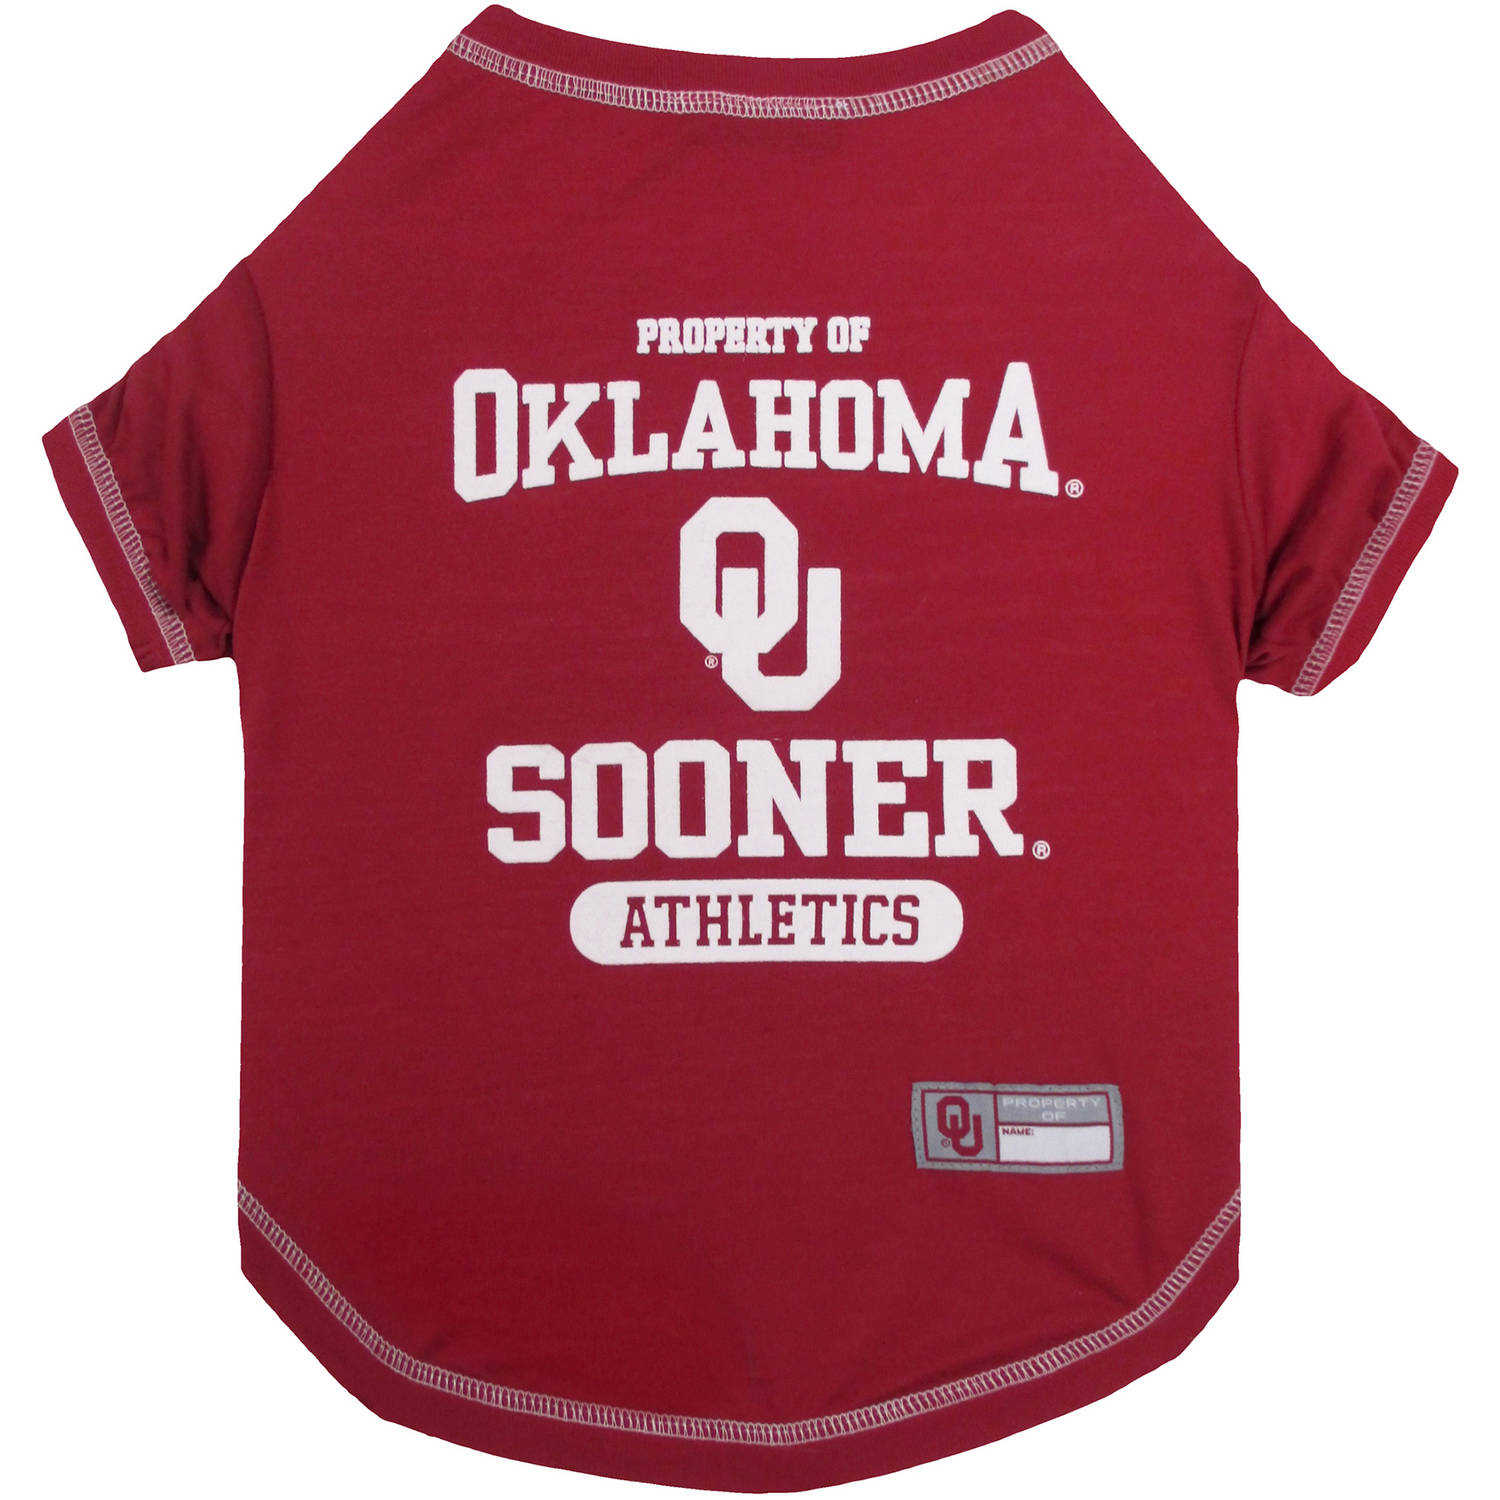 Pets First Collegiate Oklahoma Sooners Pet T-shirt, Assorted Sizes